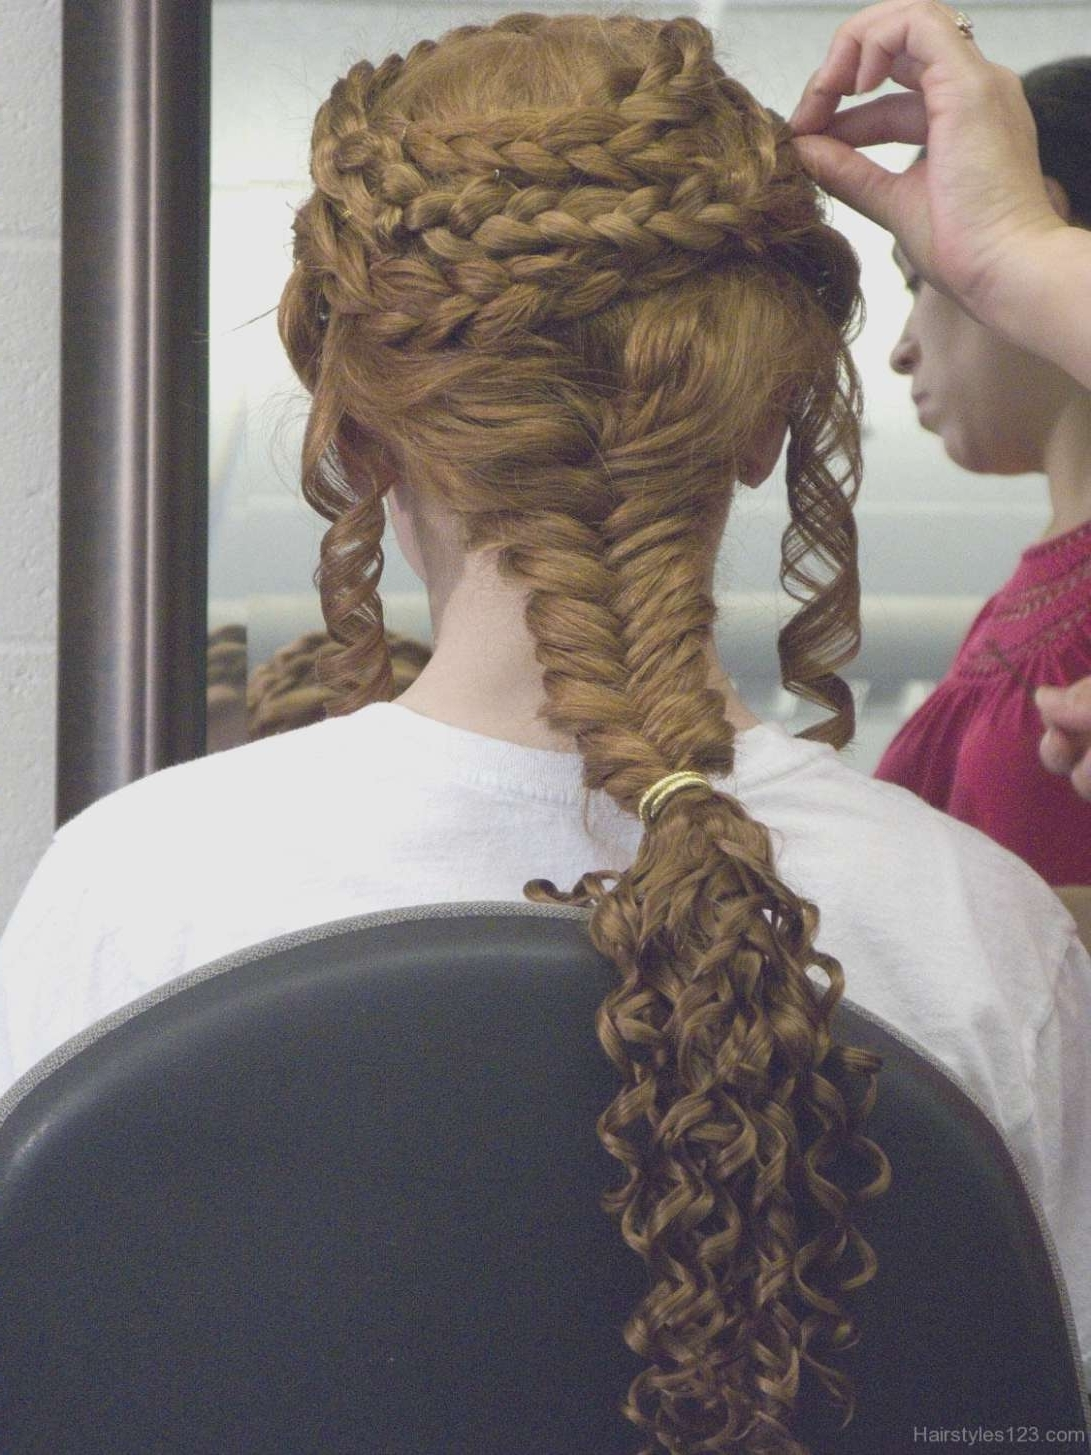 Victorian Braid Hairstyles Victorian Hairstyles Page 2 – Gulfsource Within Preferred Braided Victorian Hairstyles (Gallery 13 of 15)